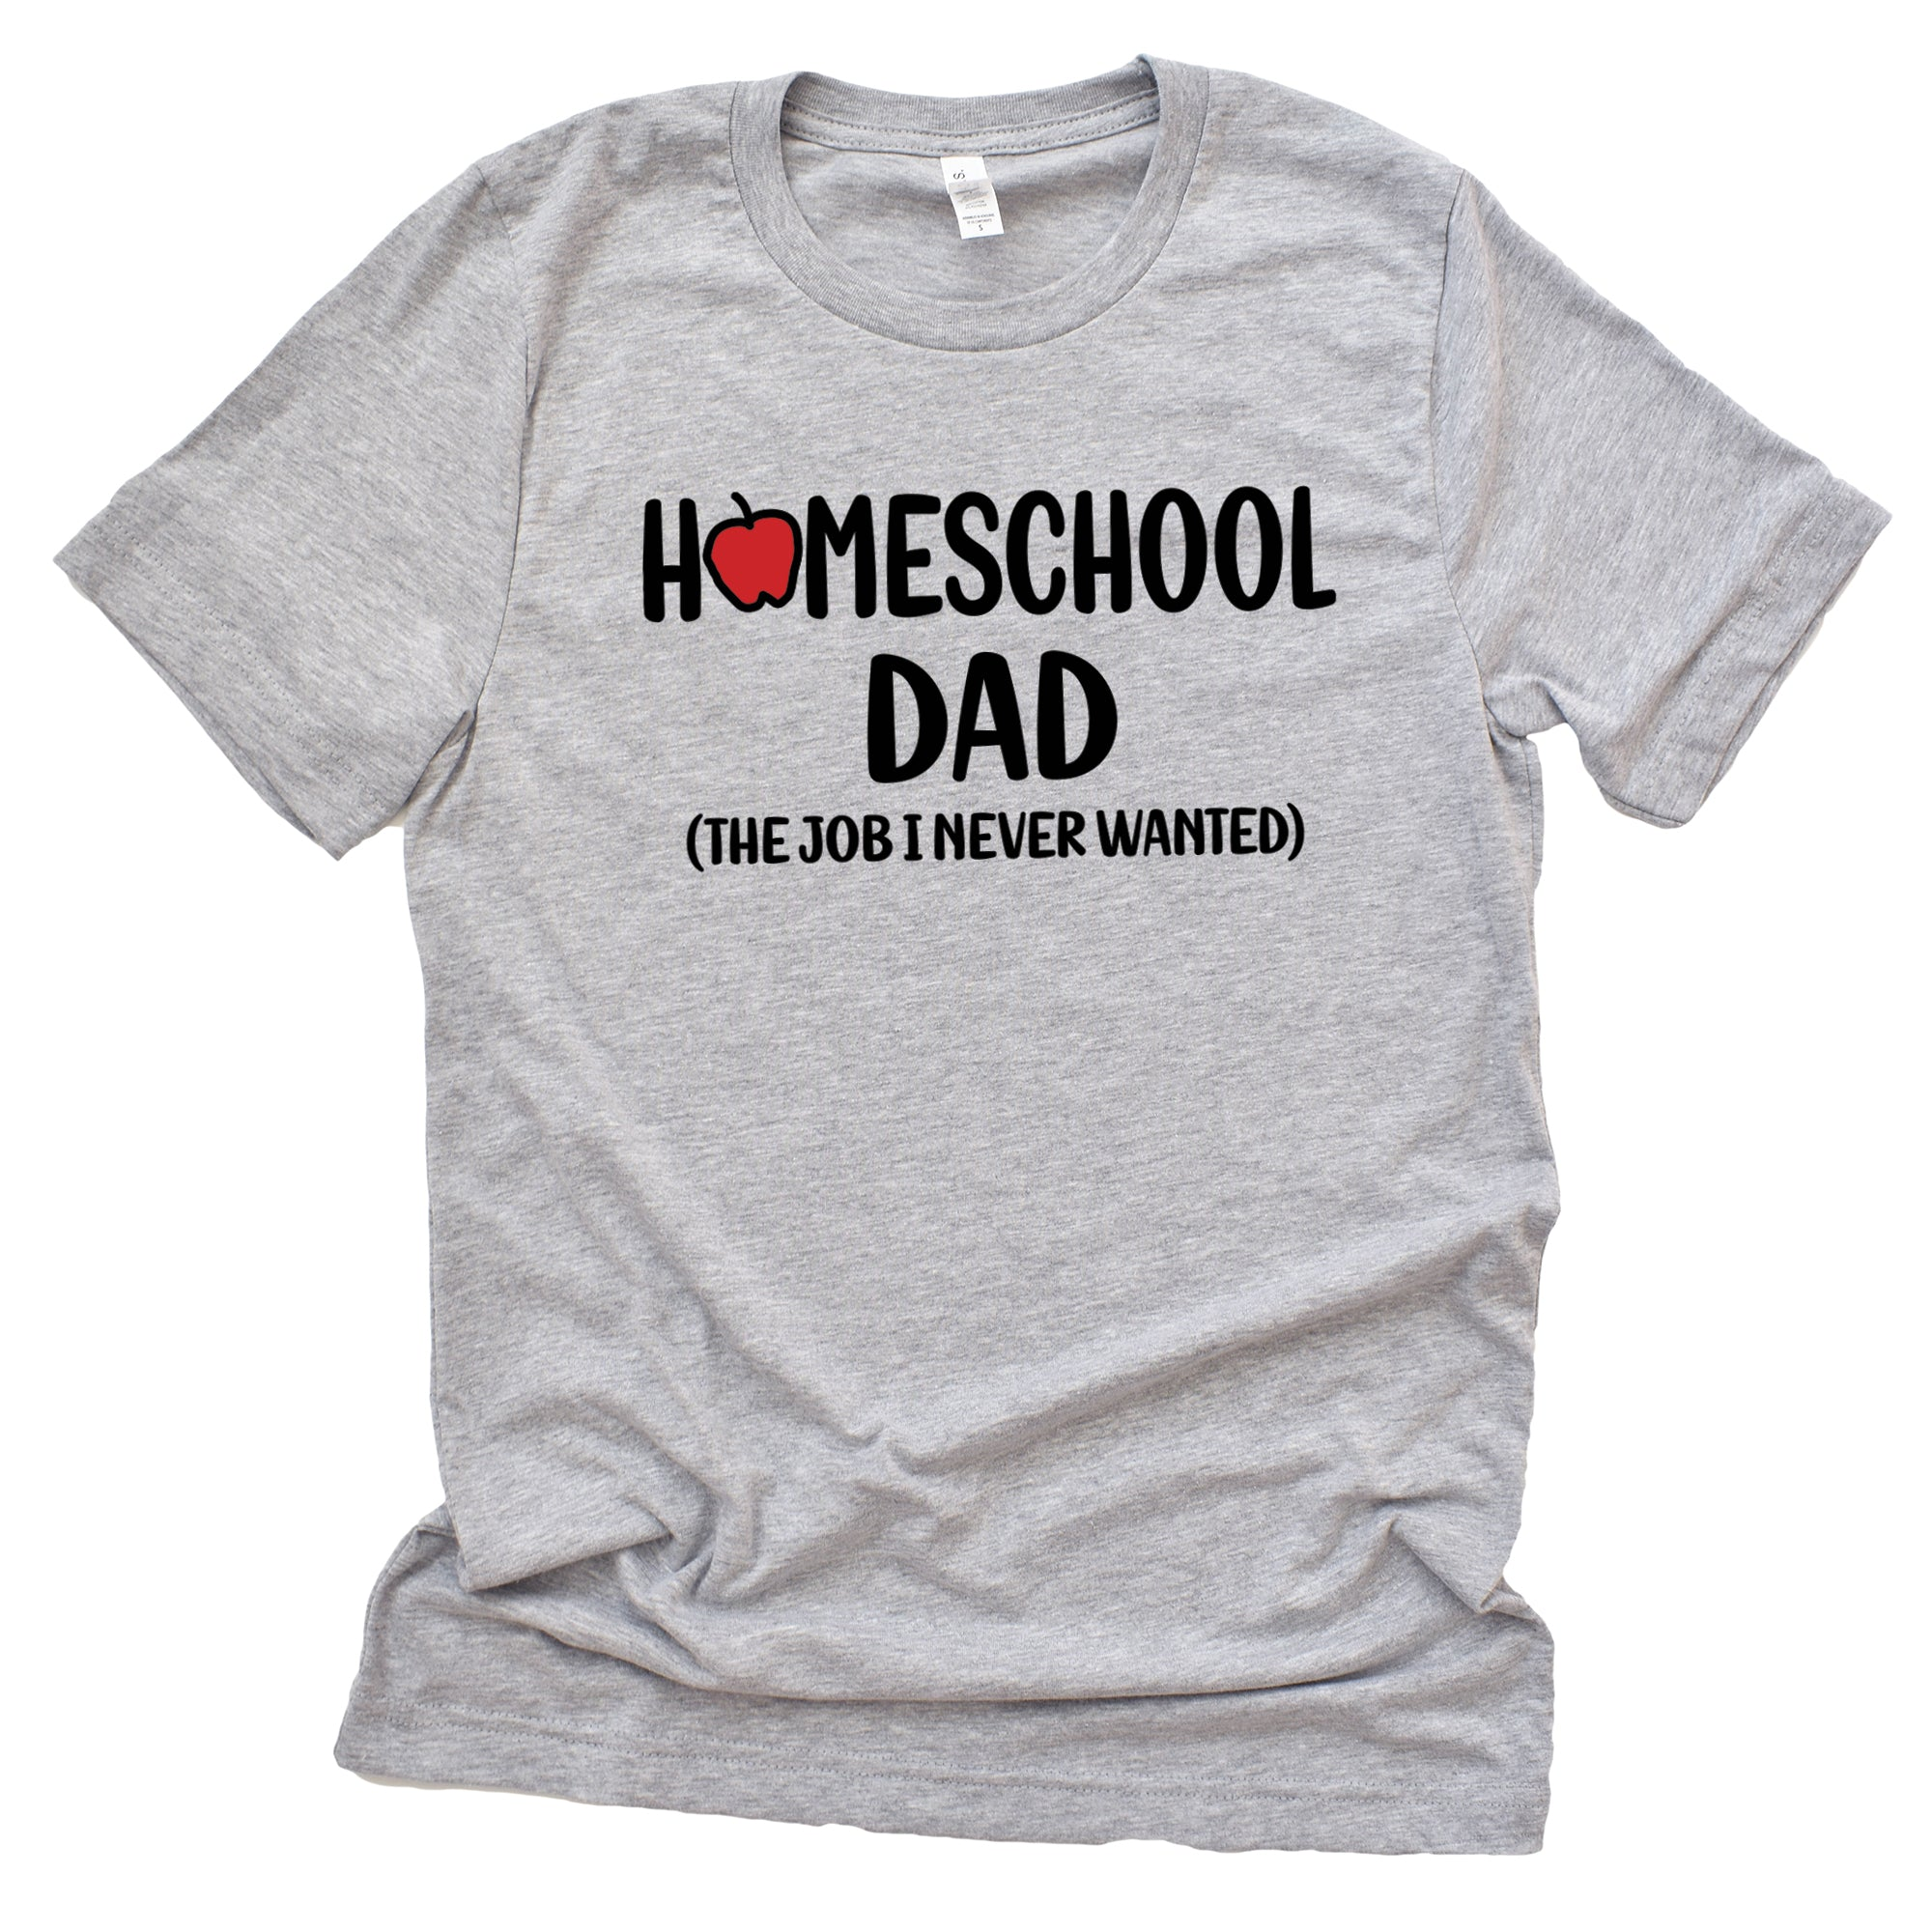 Homeschool Dad (The Job I Never Wanted)